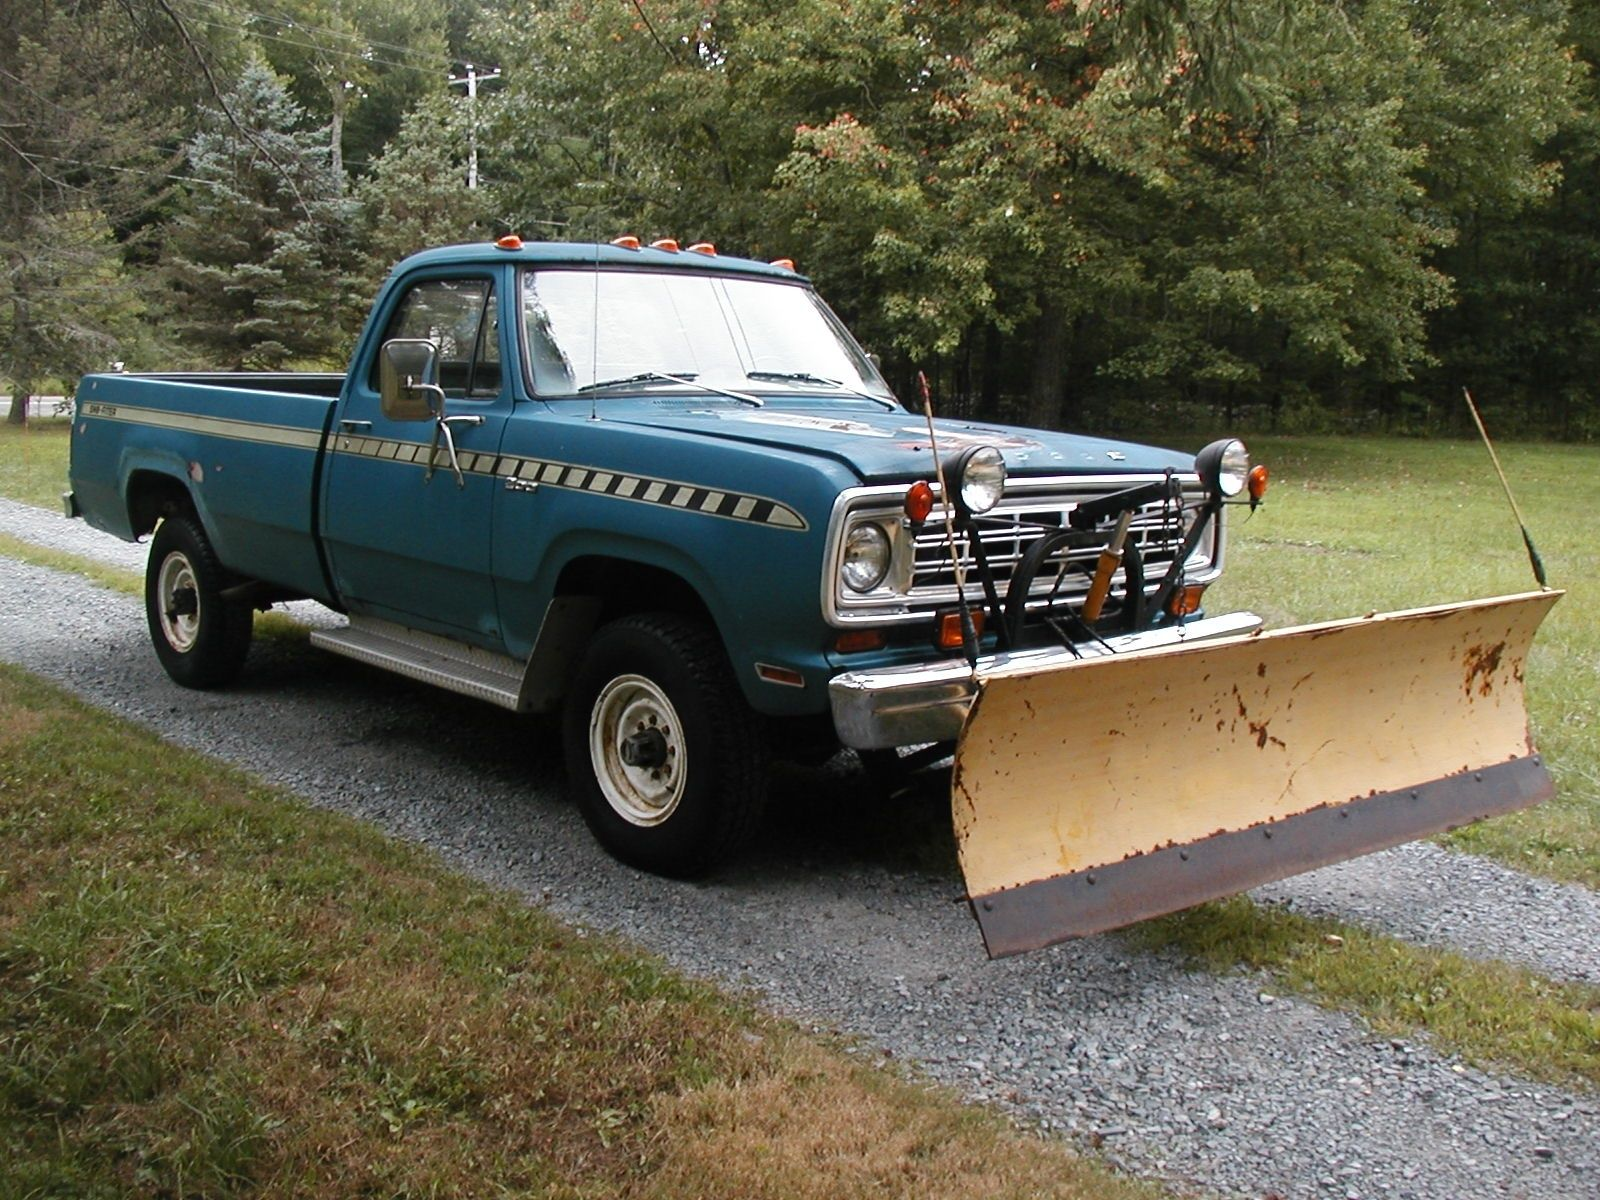 Watch also 1958 Dodge D100 Pickup furthermore Watch additionally Dodge Sno Fiter UAEj1CsAWxZKnEB 7yqZZOrq3aqtPjF7LscjaB8CAIY together with 278055 1988 Dodge Power Ram 150 4x4 56k Actual Miles The Best You Will Find. on dodge w100 4x4